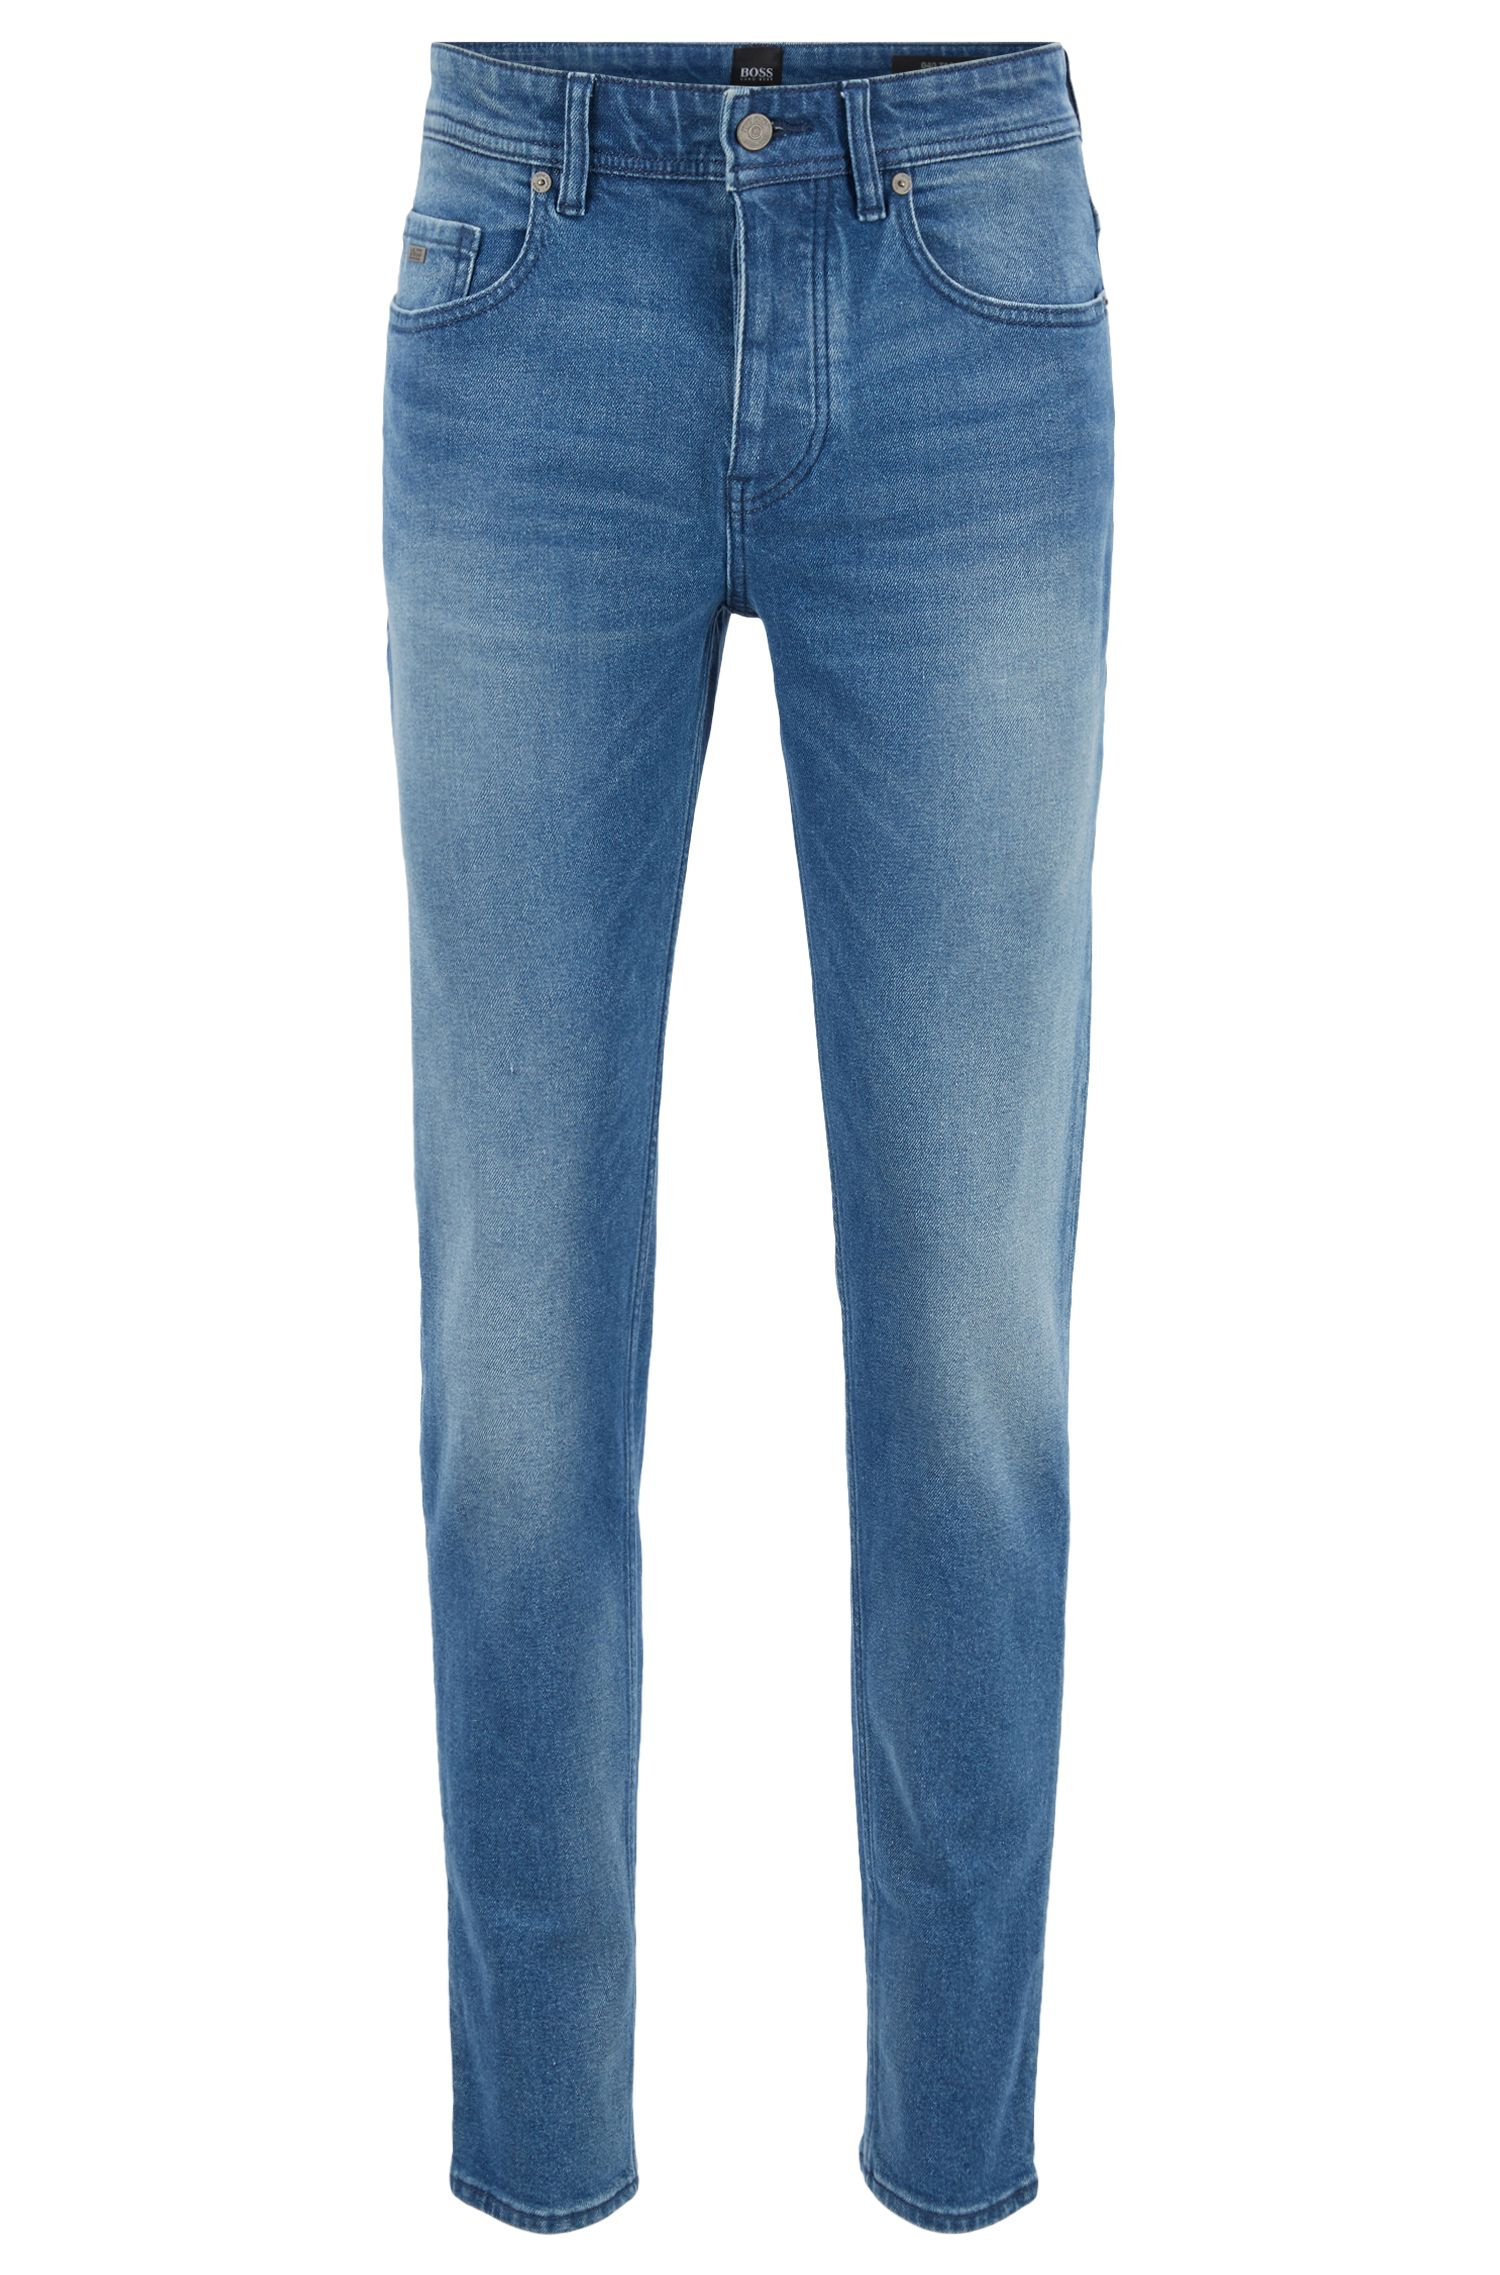 Tapered-fit jeans in vintage-look comfort-stretch denim, Blue